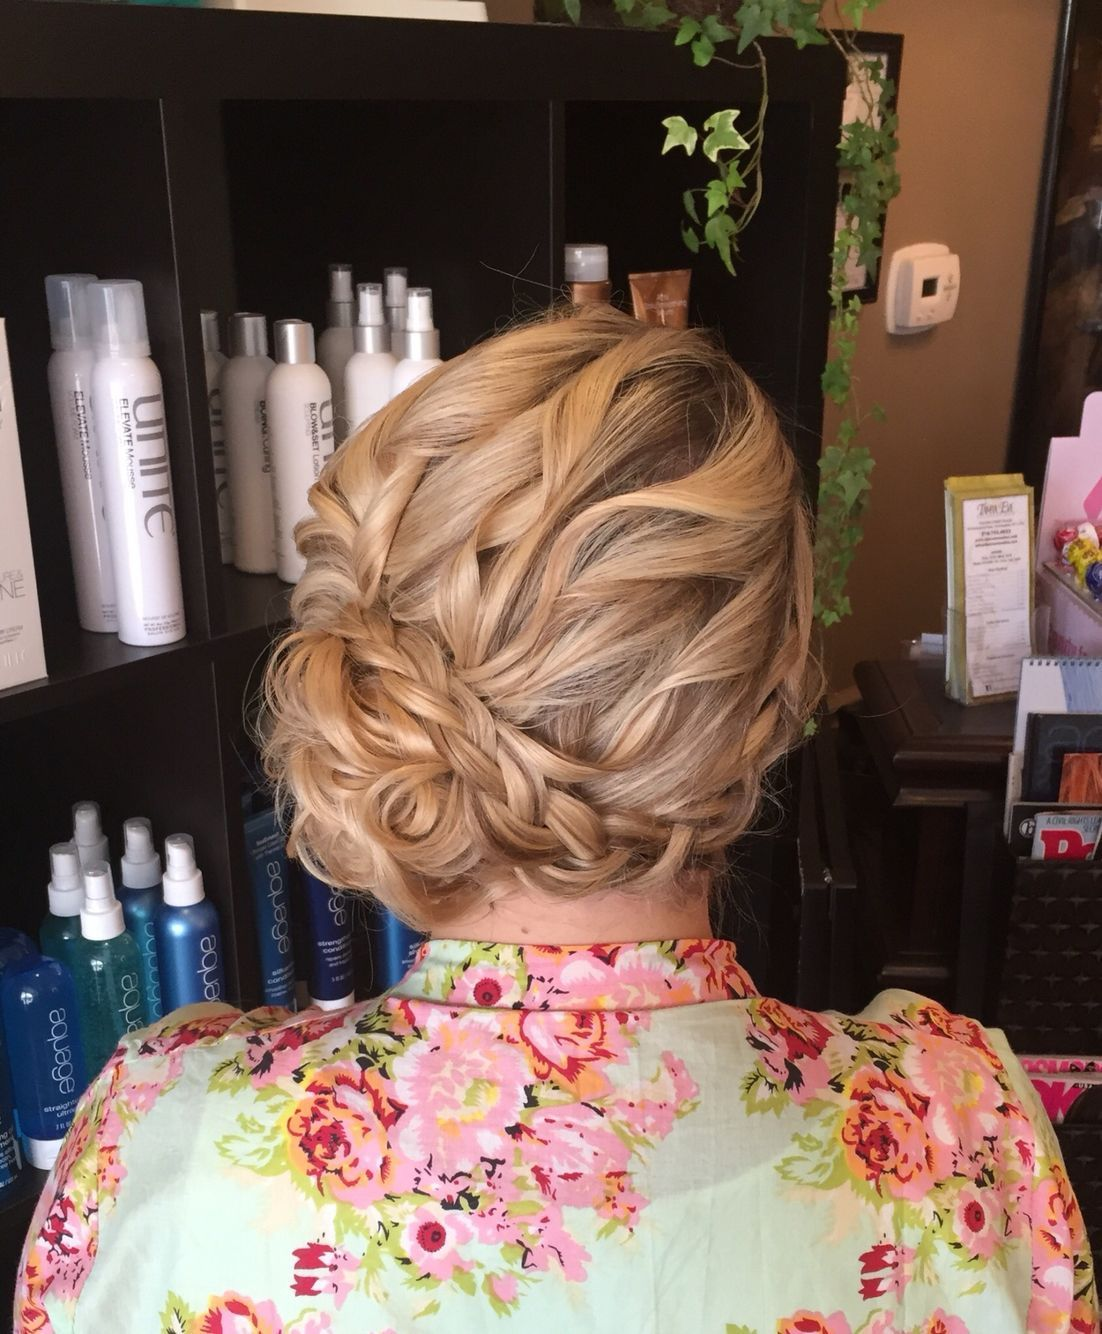 Gorgeous Wedding hair by Kristy at Tamra Eve Salon Farmingdale, NY curly low side bun updo with an incorporated braid. Absolutely lovely and Kristy listened to my request and gave me everything I wanted and more! www.tamraevesalon.com #lowsidebuns Gorgeous Wedding hair by Kristy at Tamra Eve Salon Farmingdale, NY curly low side bun updo with an incorporated braid. Absolutely lovely and Kristy listened to my request and gave me everything I wanted and more! www.tamraevesalon.com #lowsidebuns